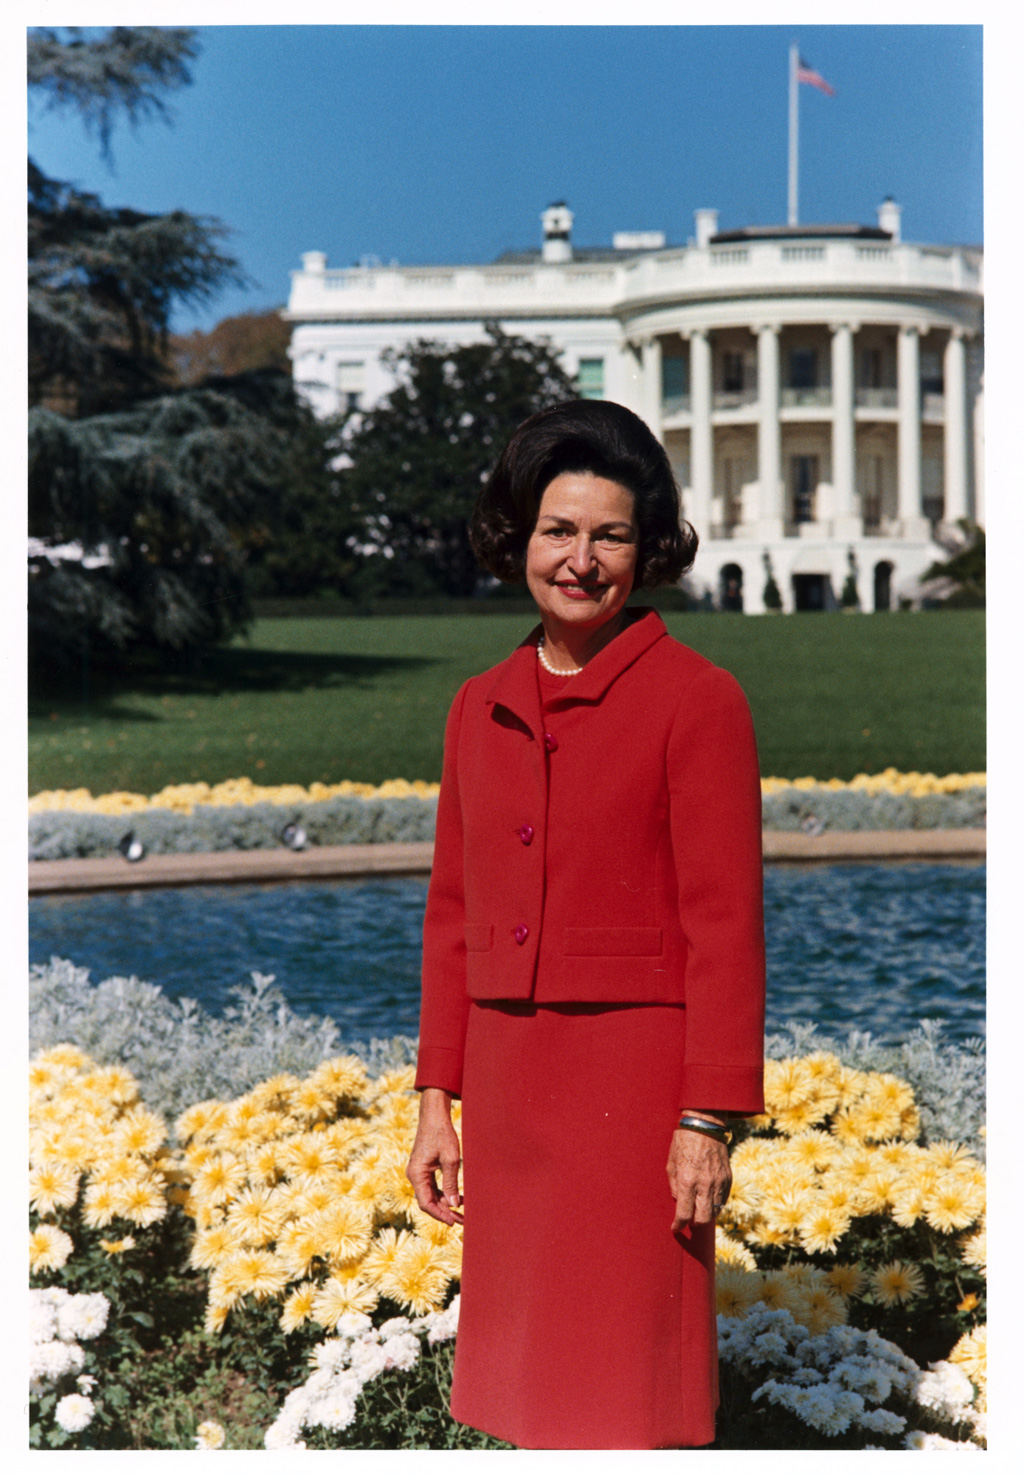 lady-bird-johnson-red-suit-white-house-m.jpg